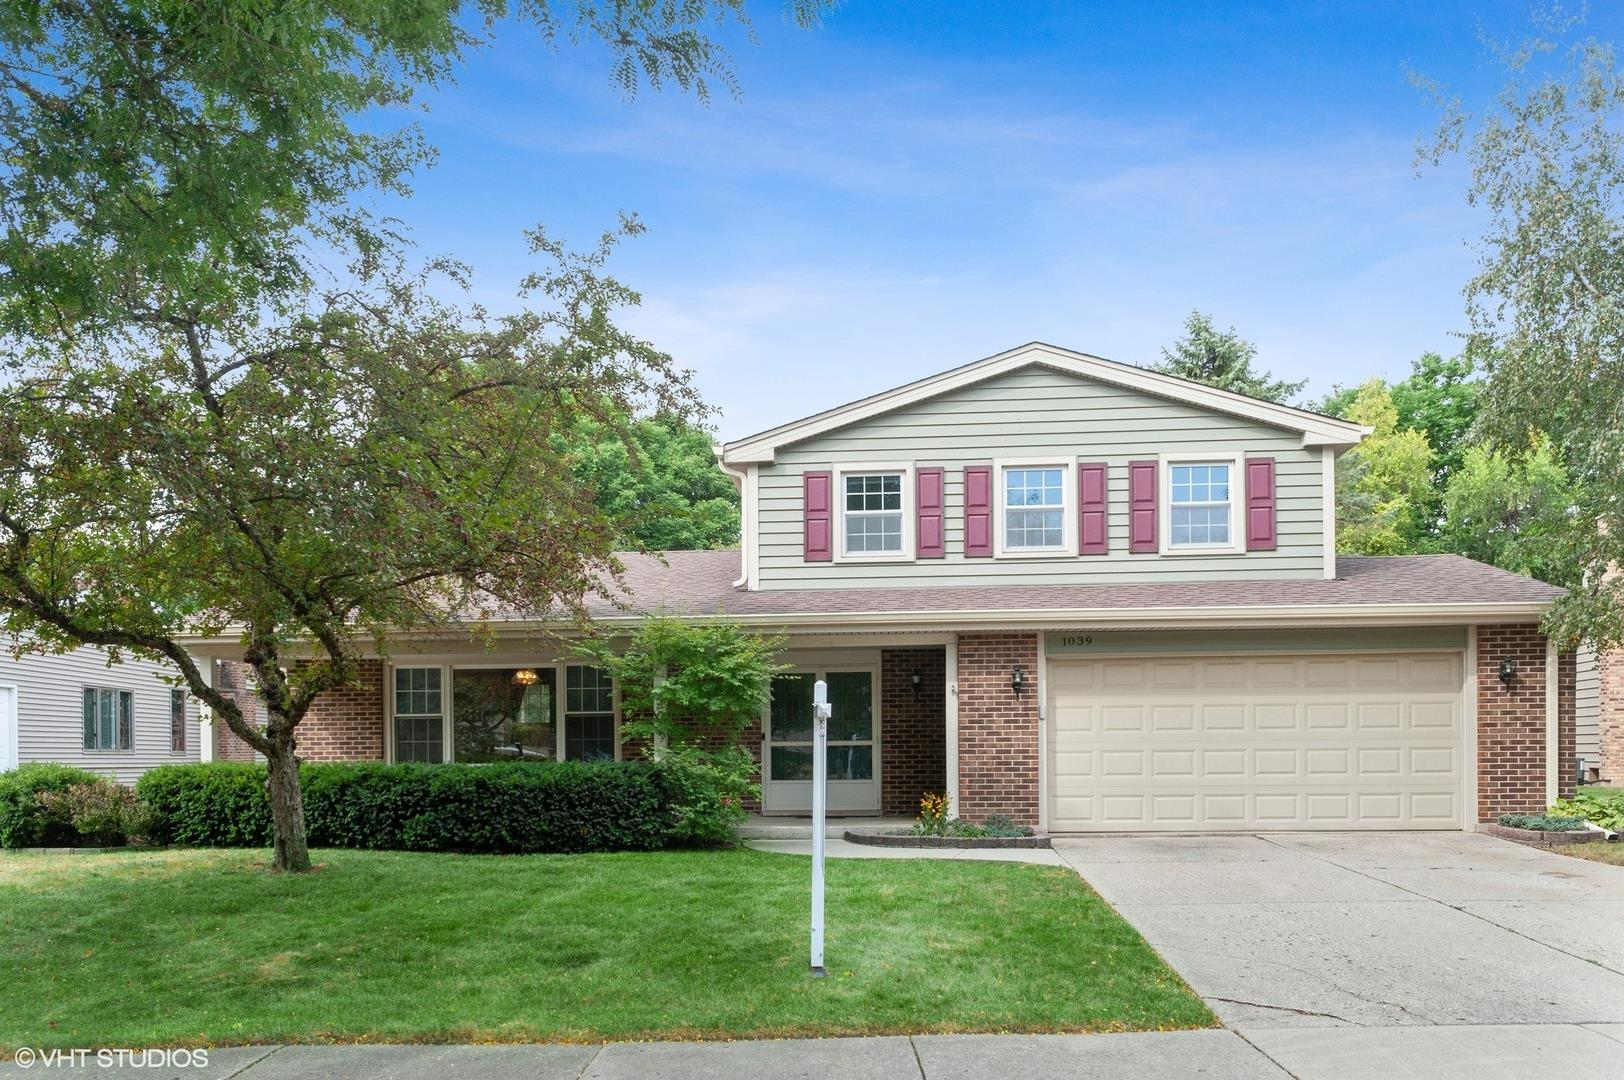 1039 Garfield Avenue, Libertyville, IL 60048 - #: 10818976